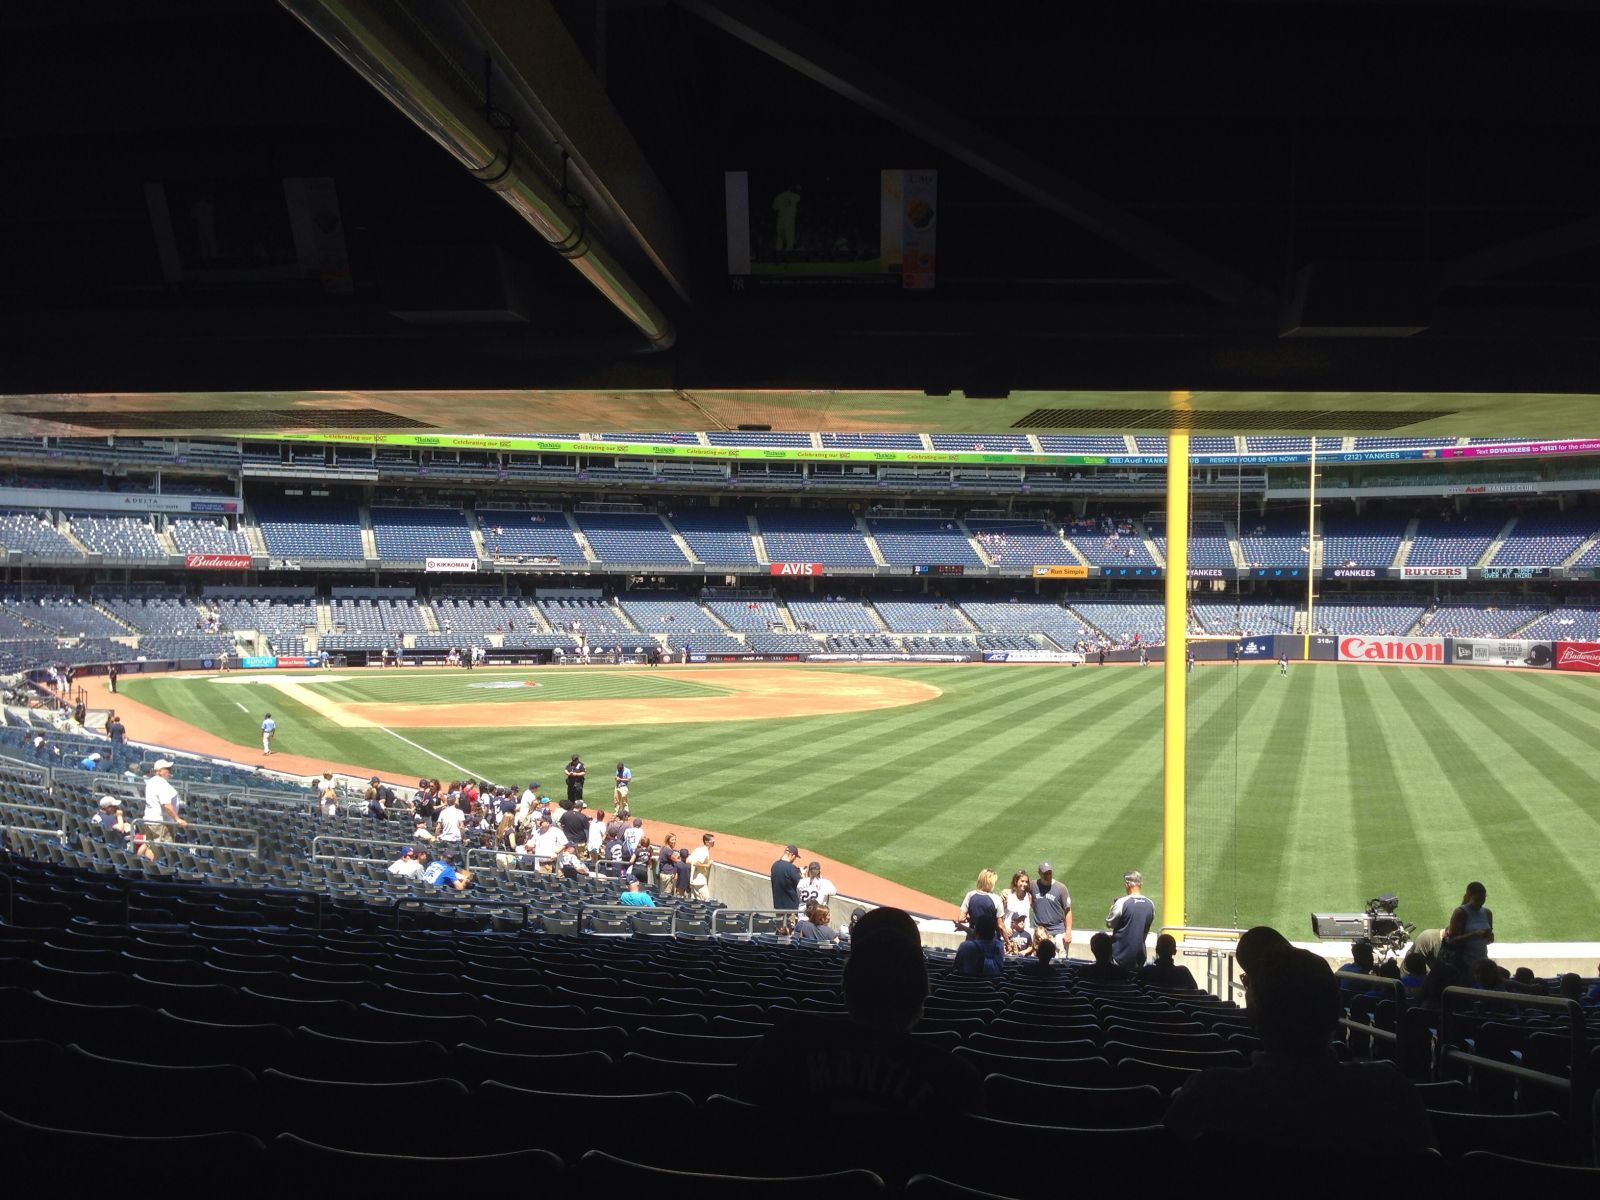 New York Yankees Seat View for Yankee Stadium Section 108, Row 22